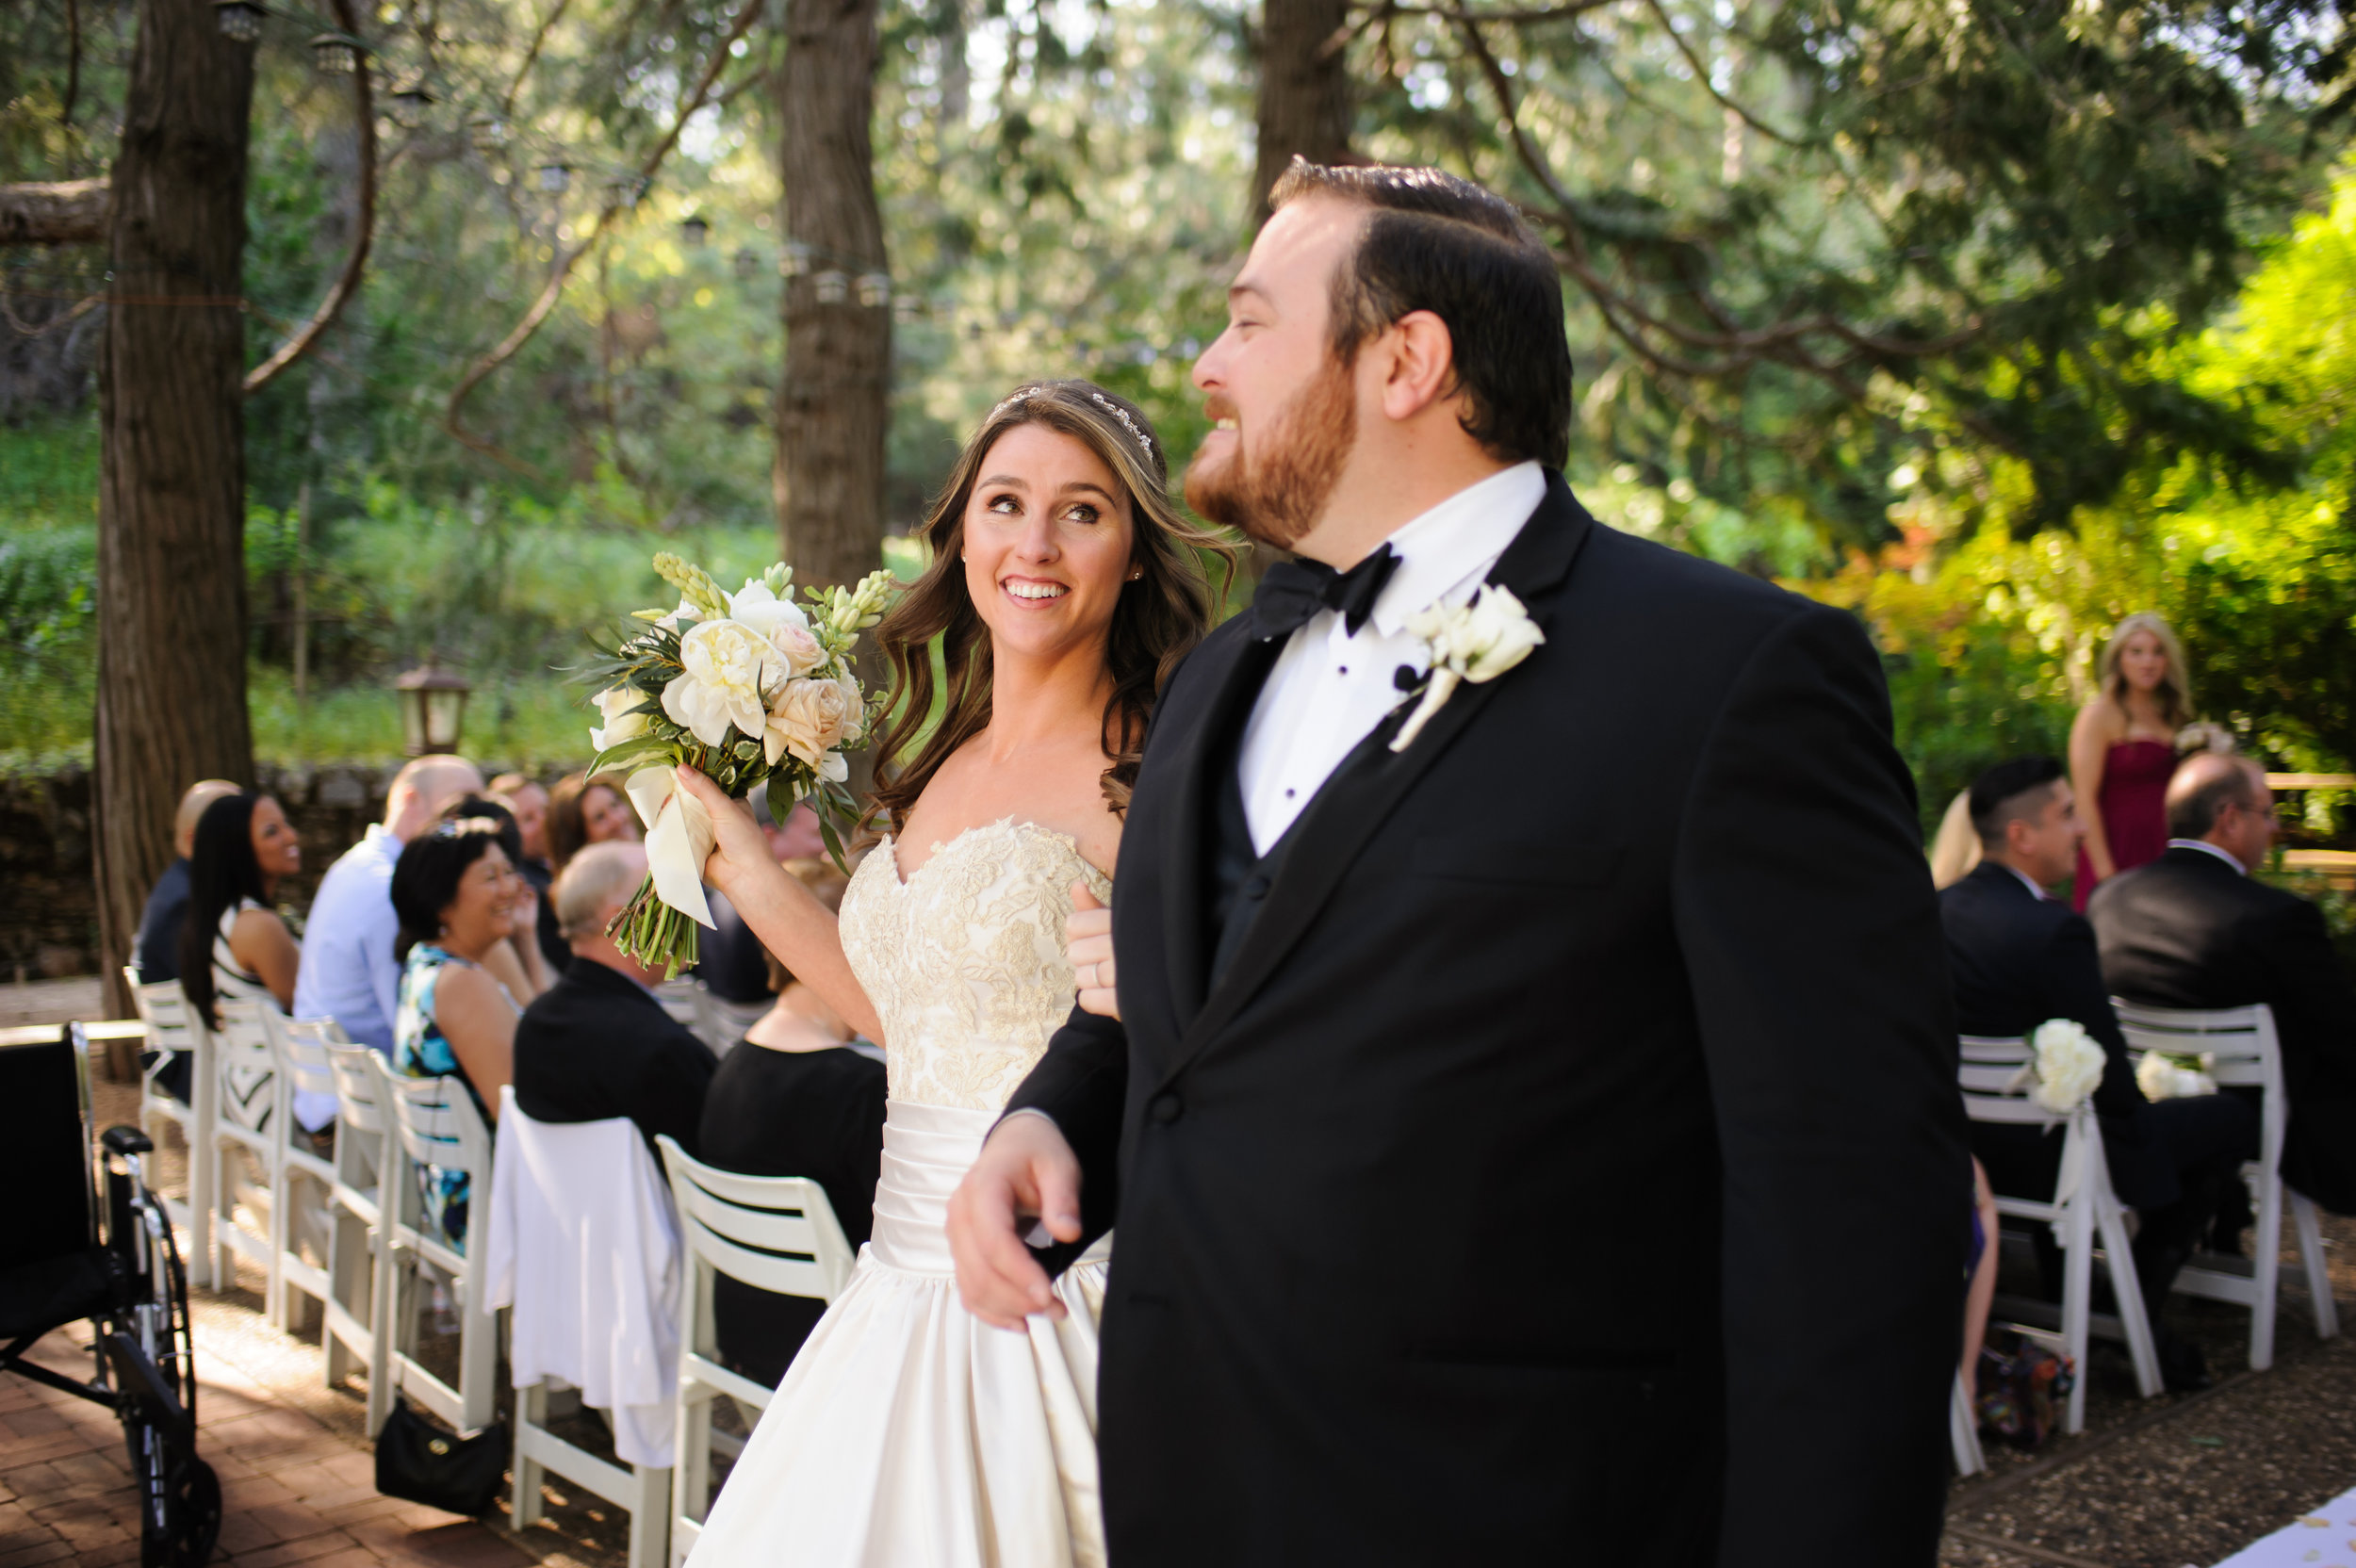 lindsey-charlie-071-monte-verde-inn-foresthill-wedding-photographer-katherine-nicole-photography.JPG